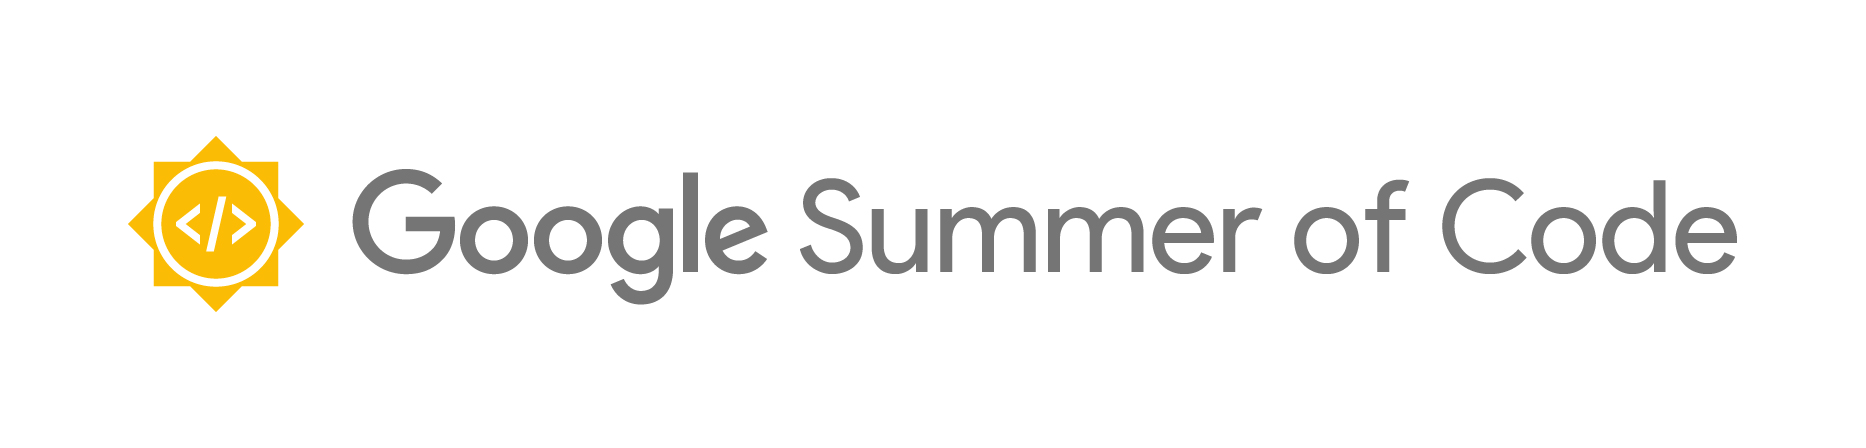 Google Summer of Code logo